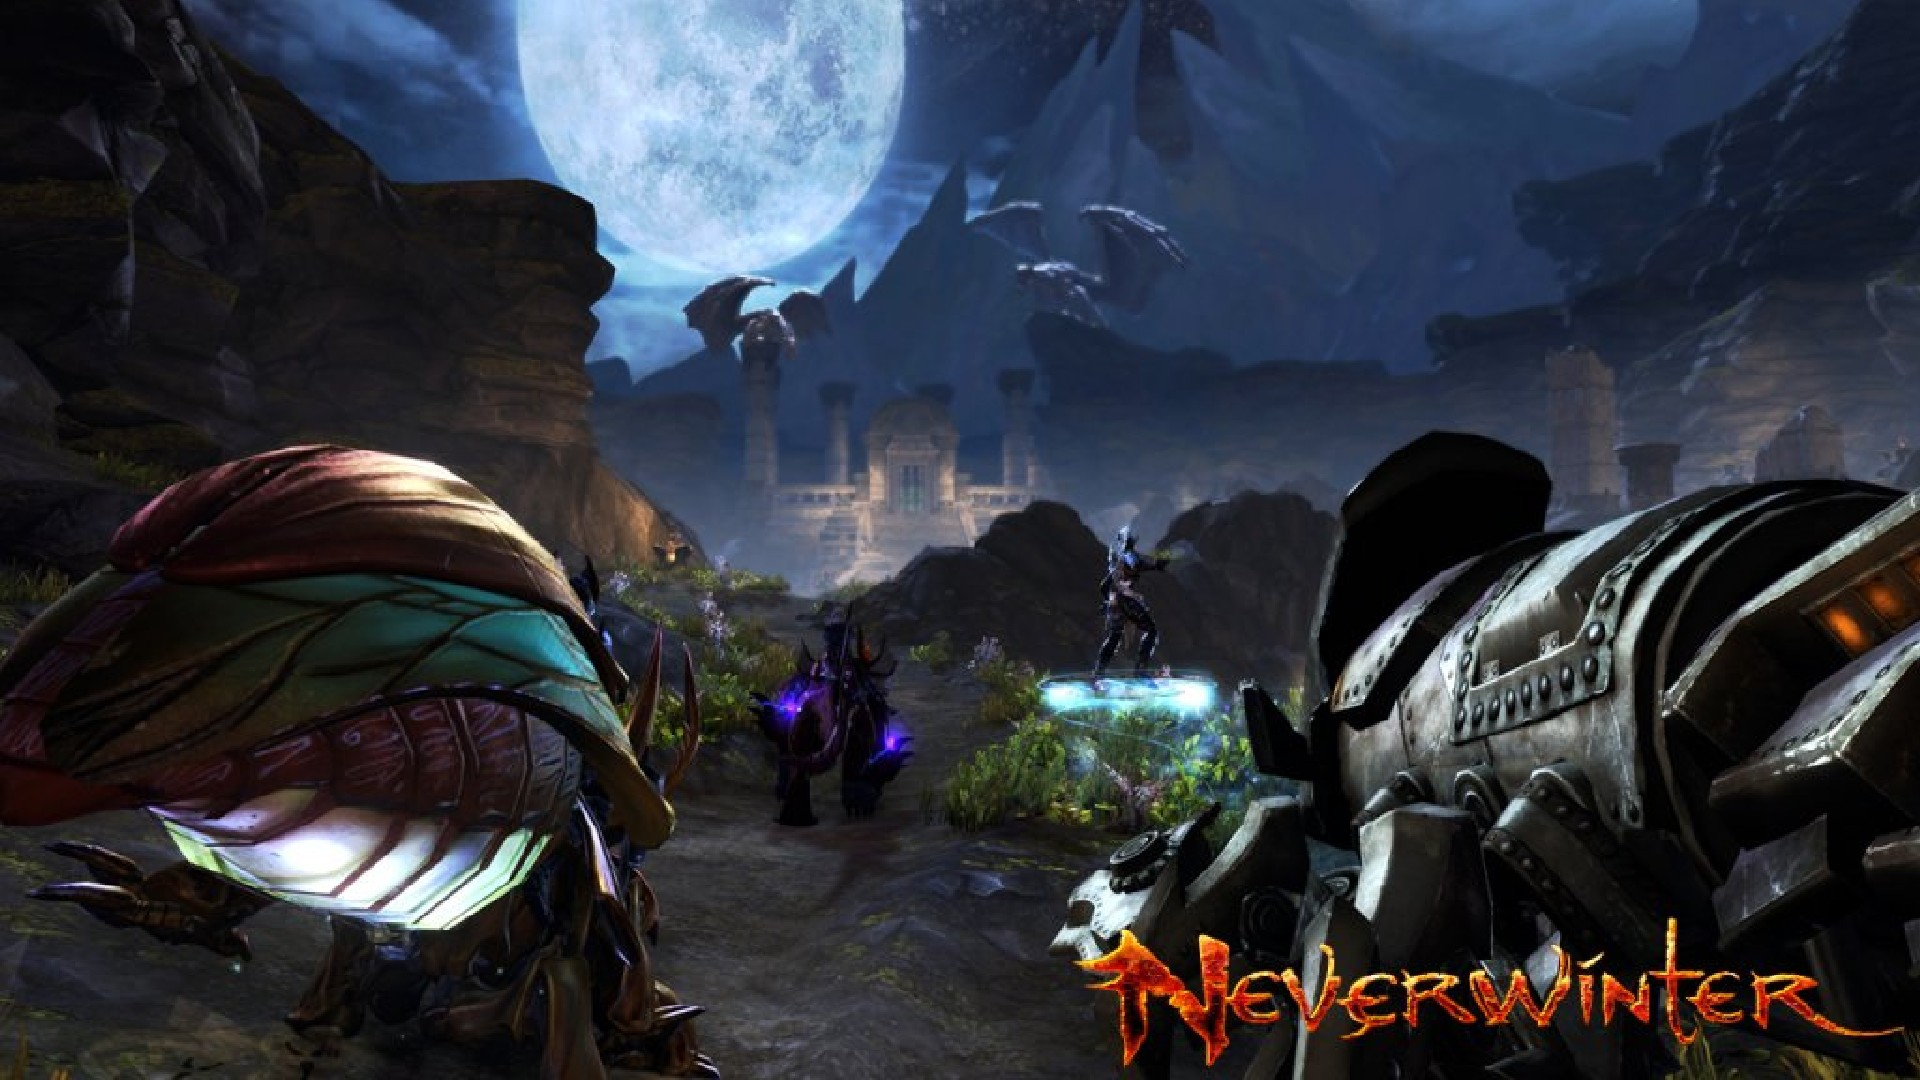 neverwinter 10022015 3